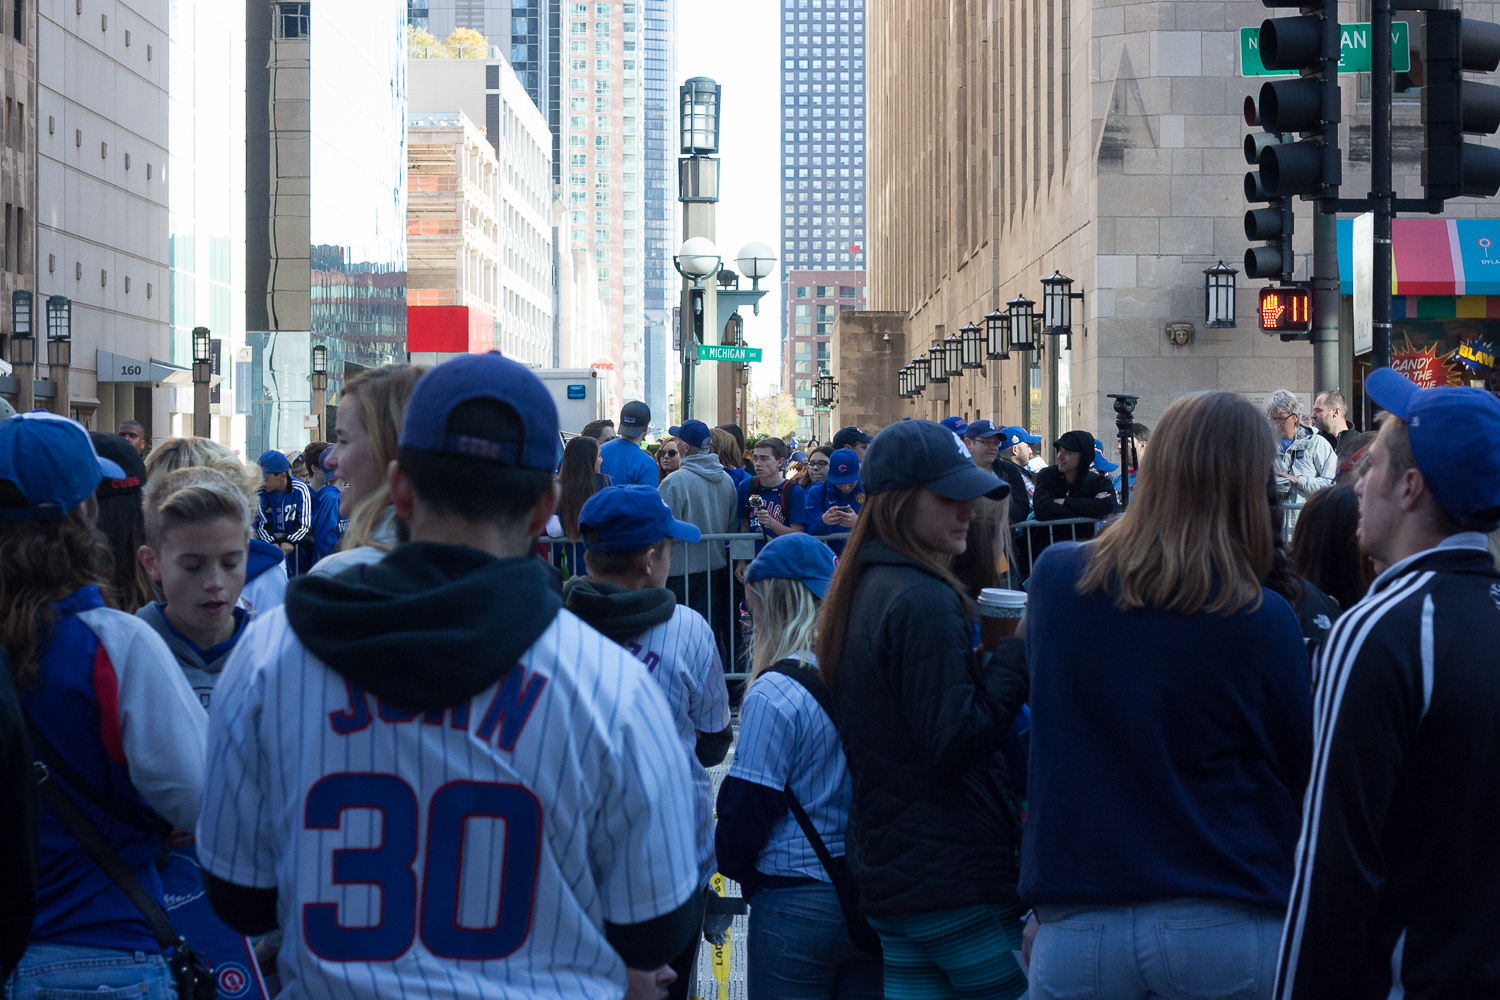 Cubs_Win_World_Series_Laura_Suprenant_Photography-5.jpg